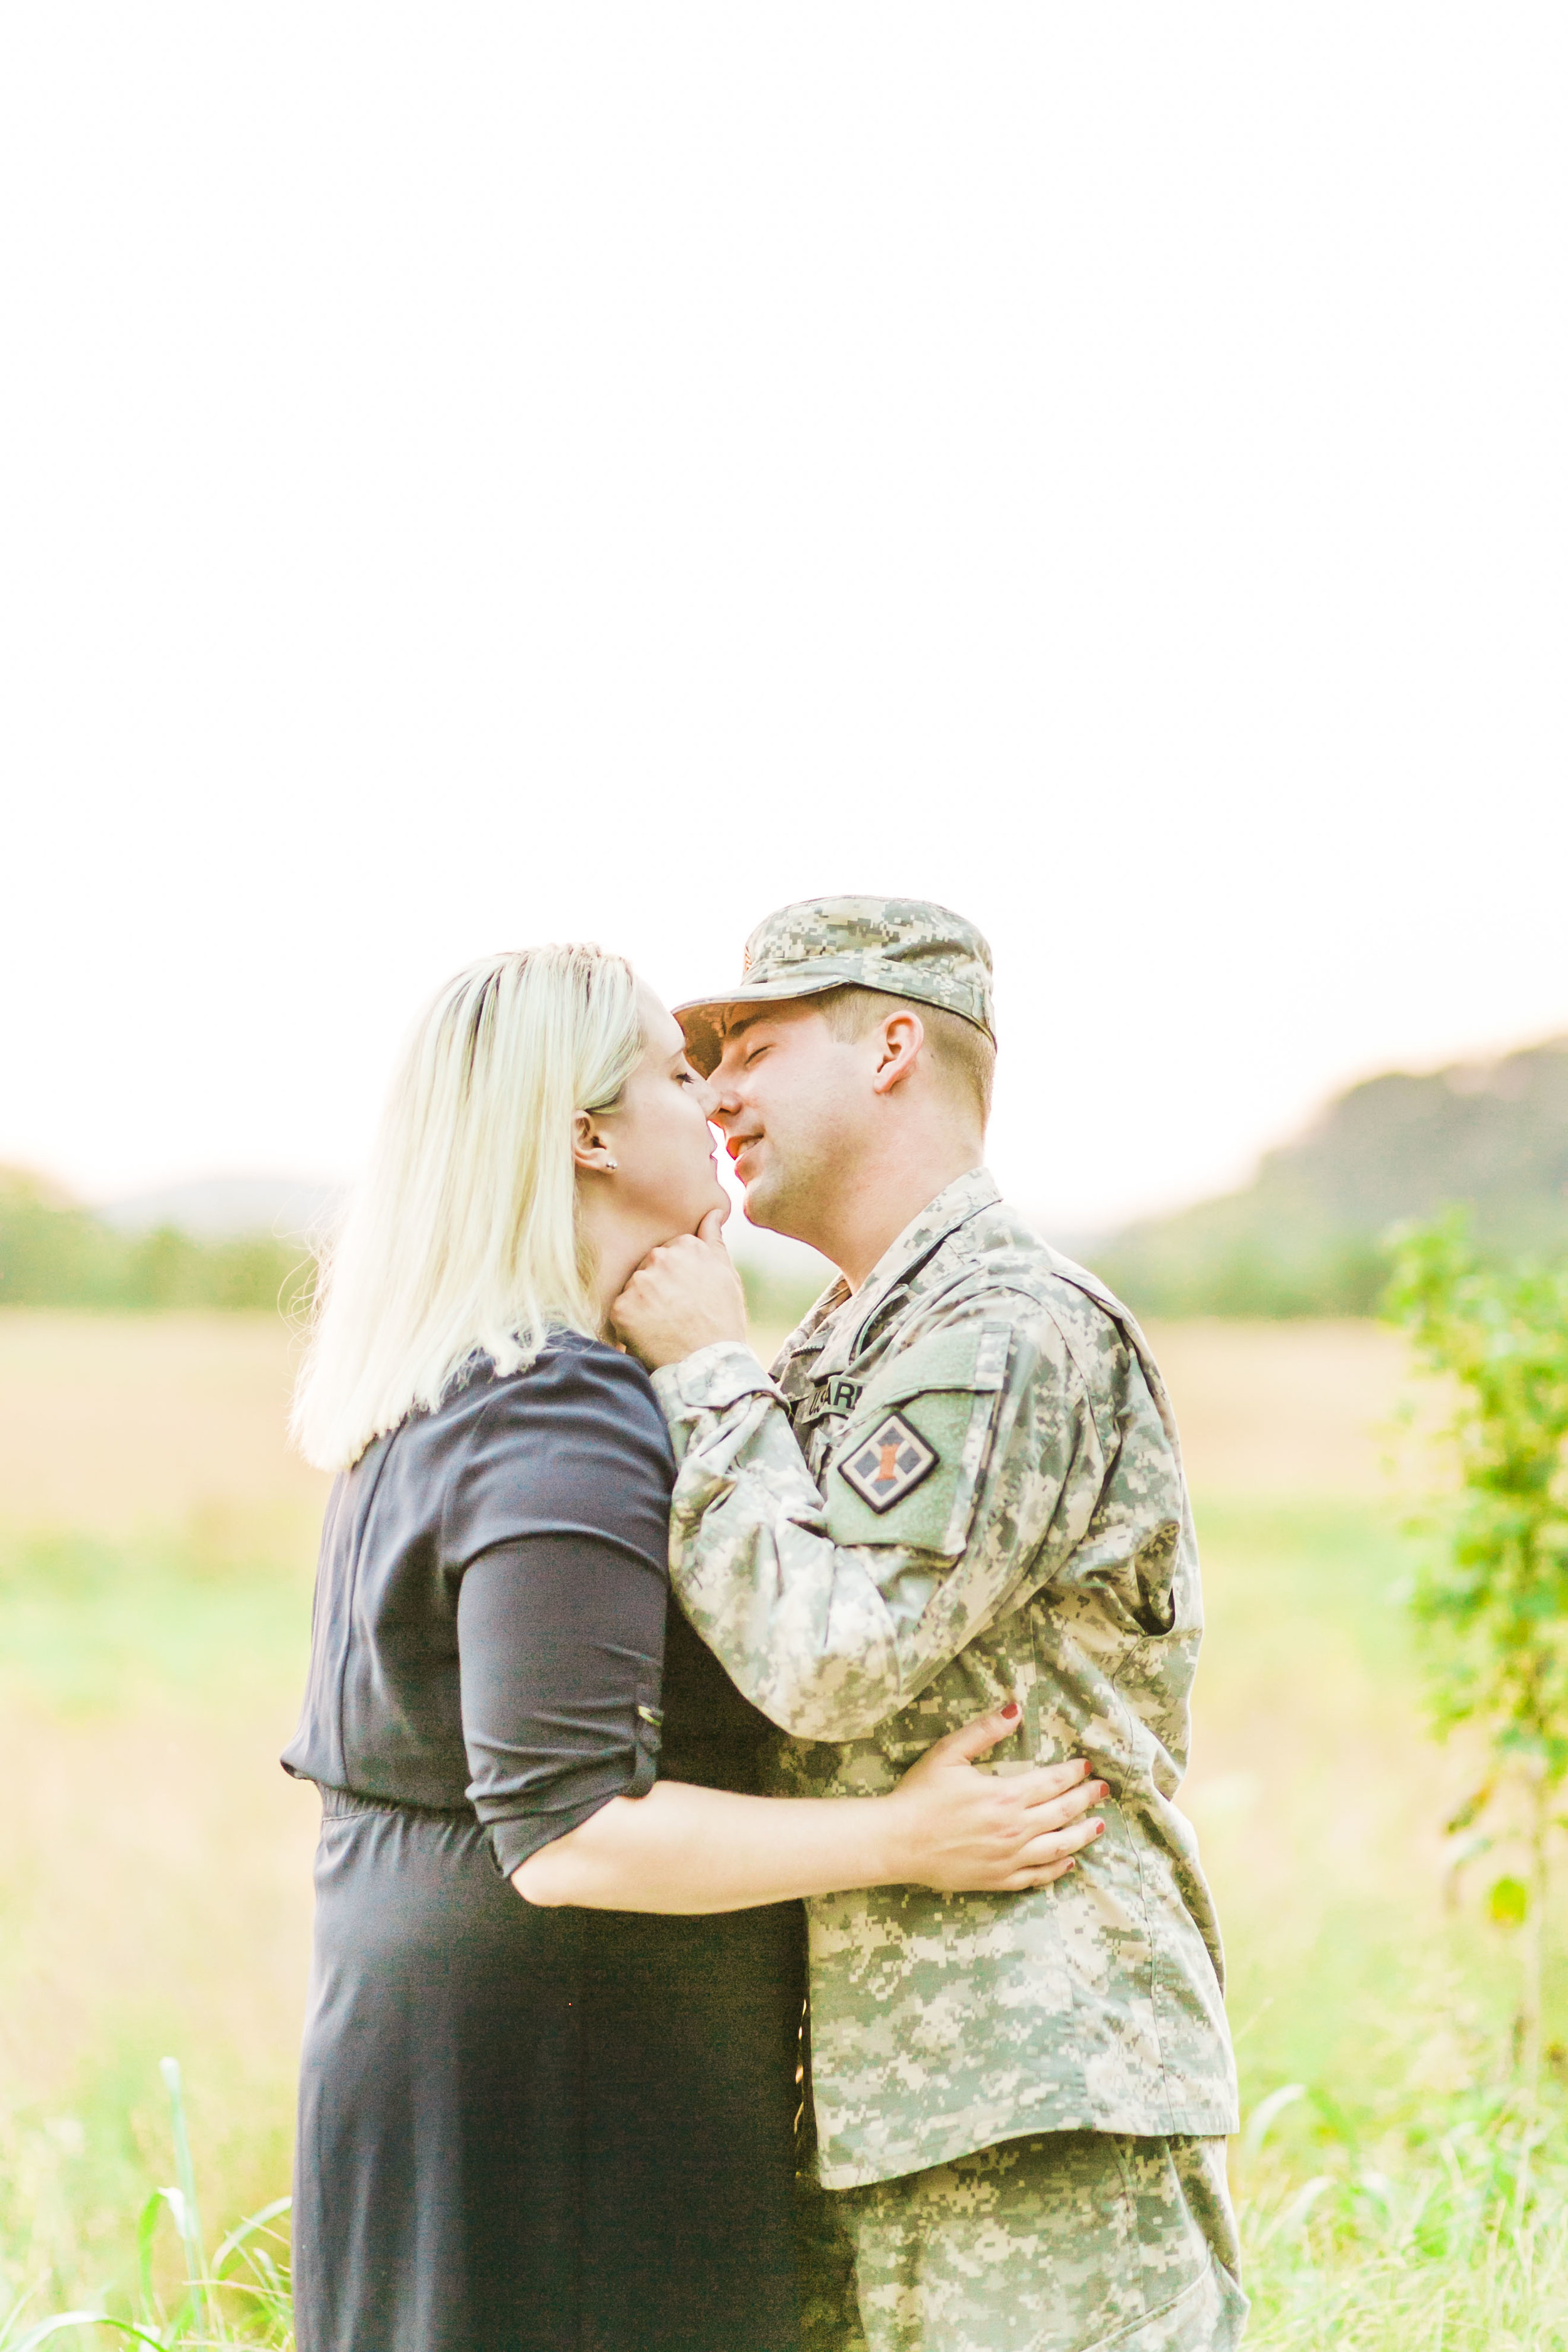 Knoxville engagement photos military fatigues